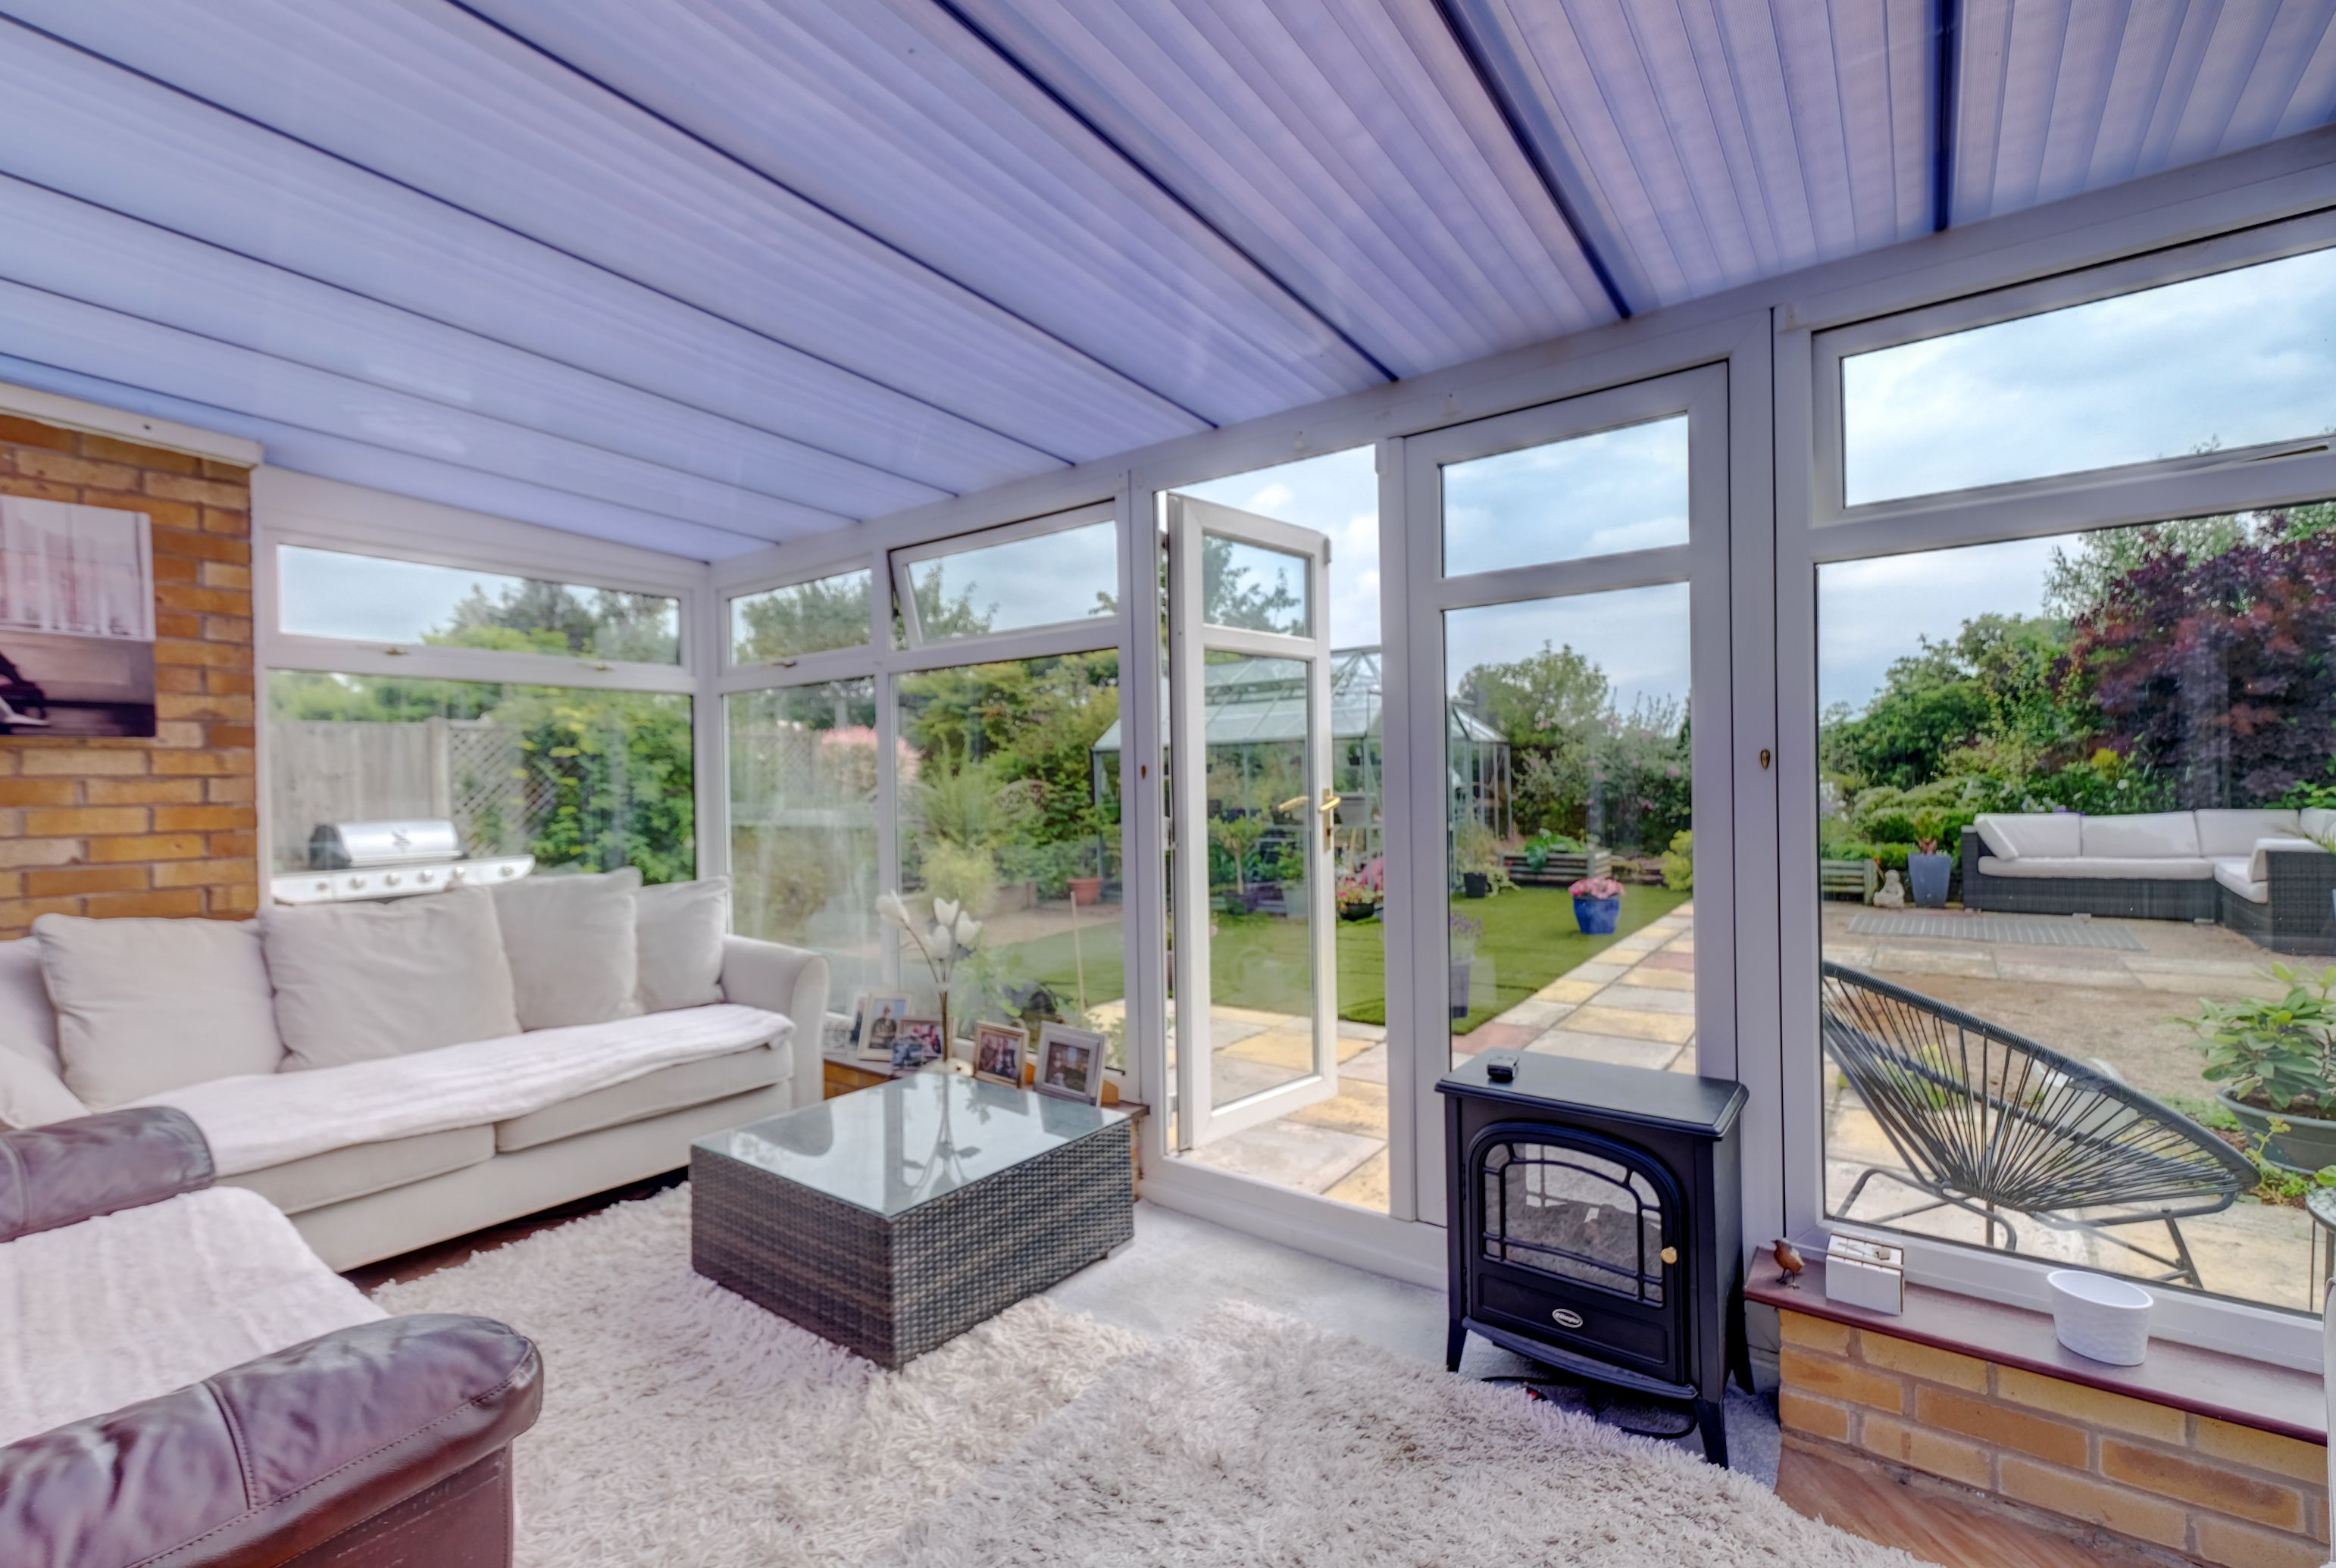 3 bed detached house for sale in Ambleside Way, Nuneaton, CV11, Nuneaton  - Property Image 12